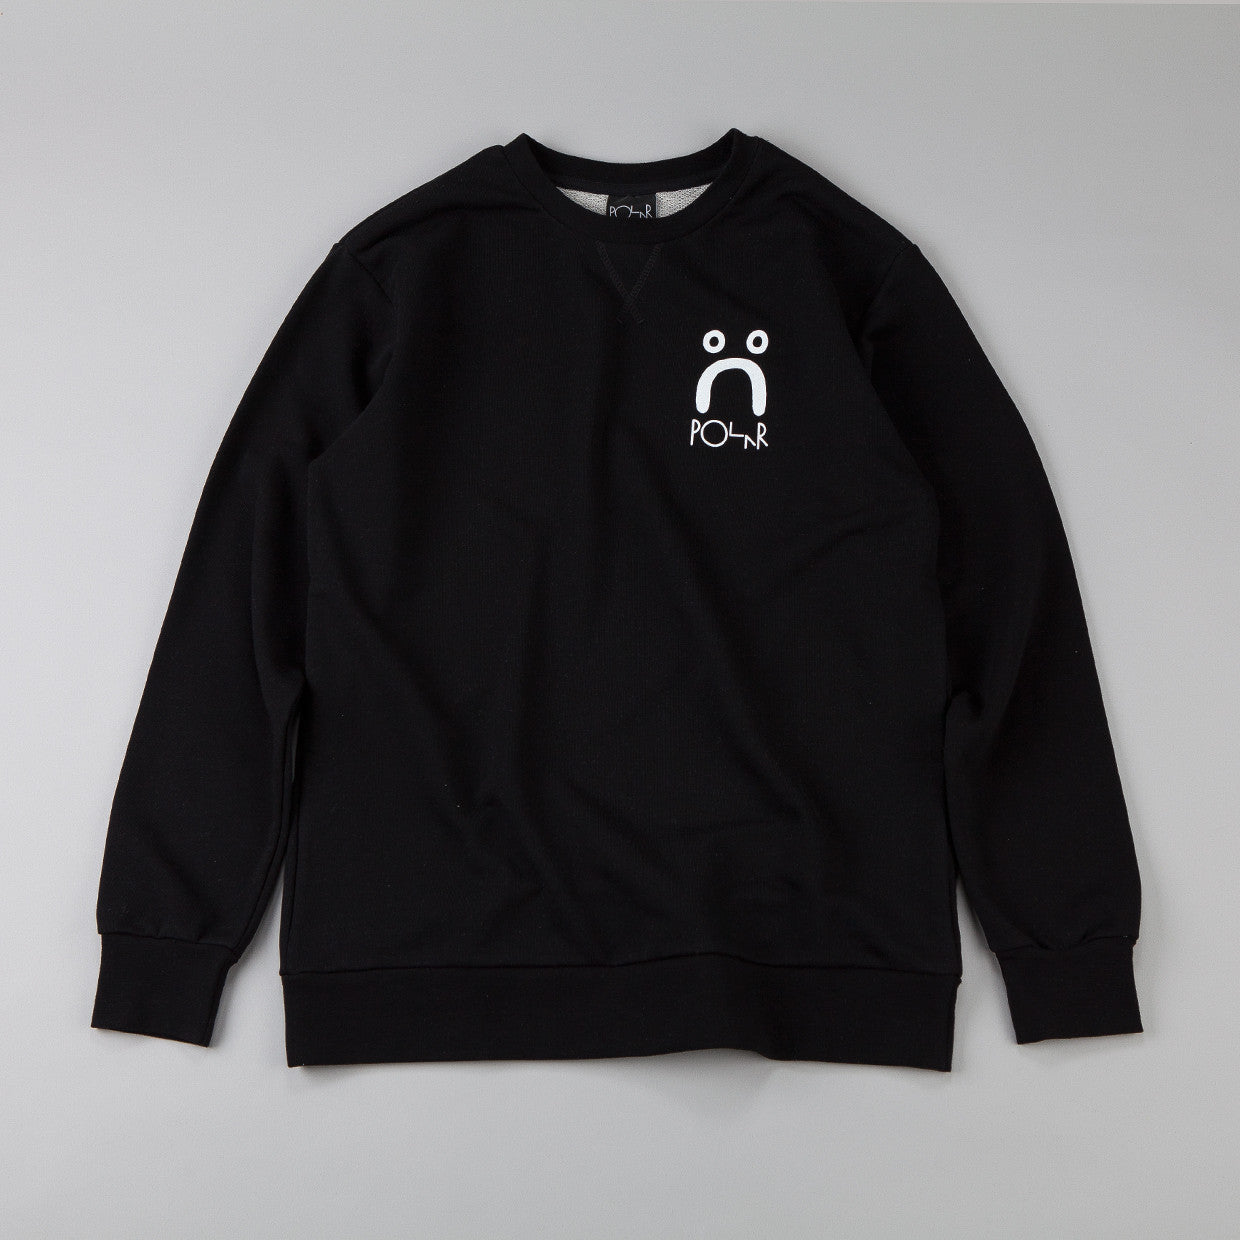 Polar Happy Sweatshirt Black